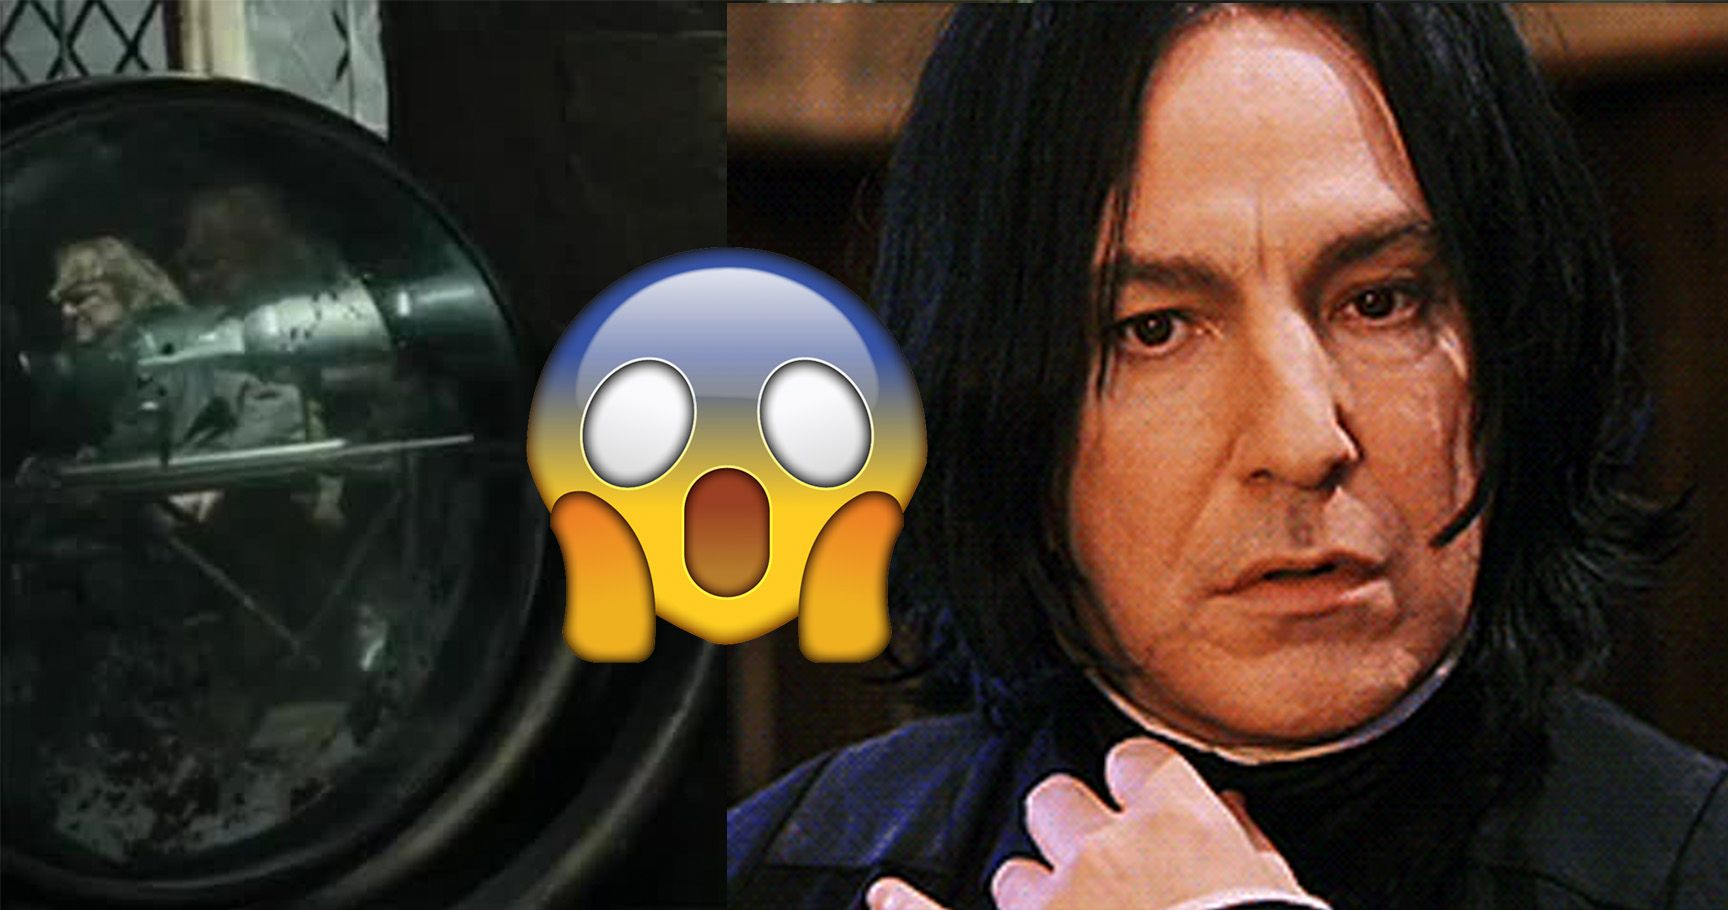 15 Hidden Messages In 'Harry Potter' Most Potterheads Are Clueless About